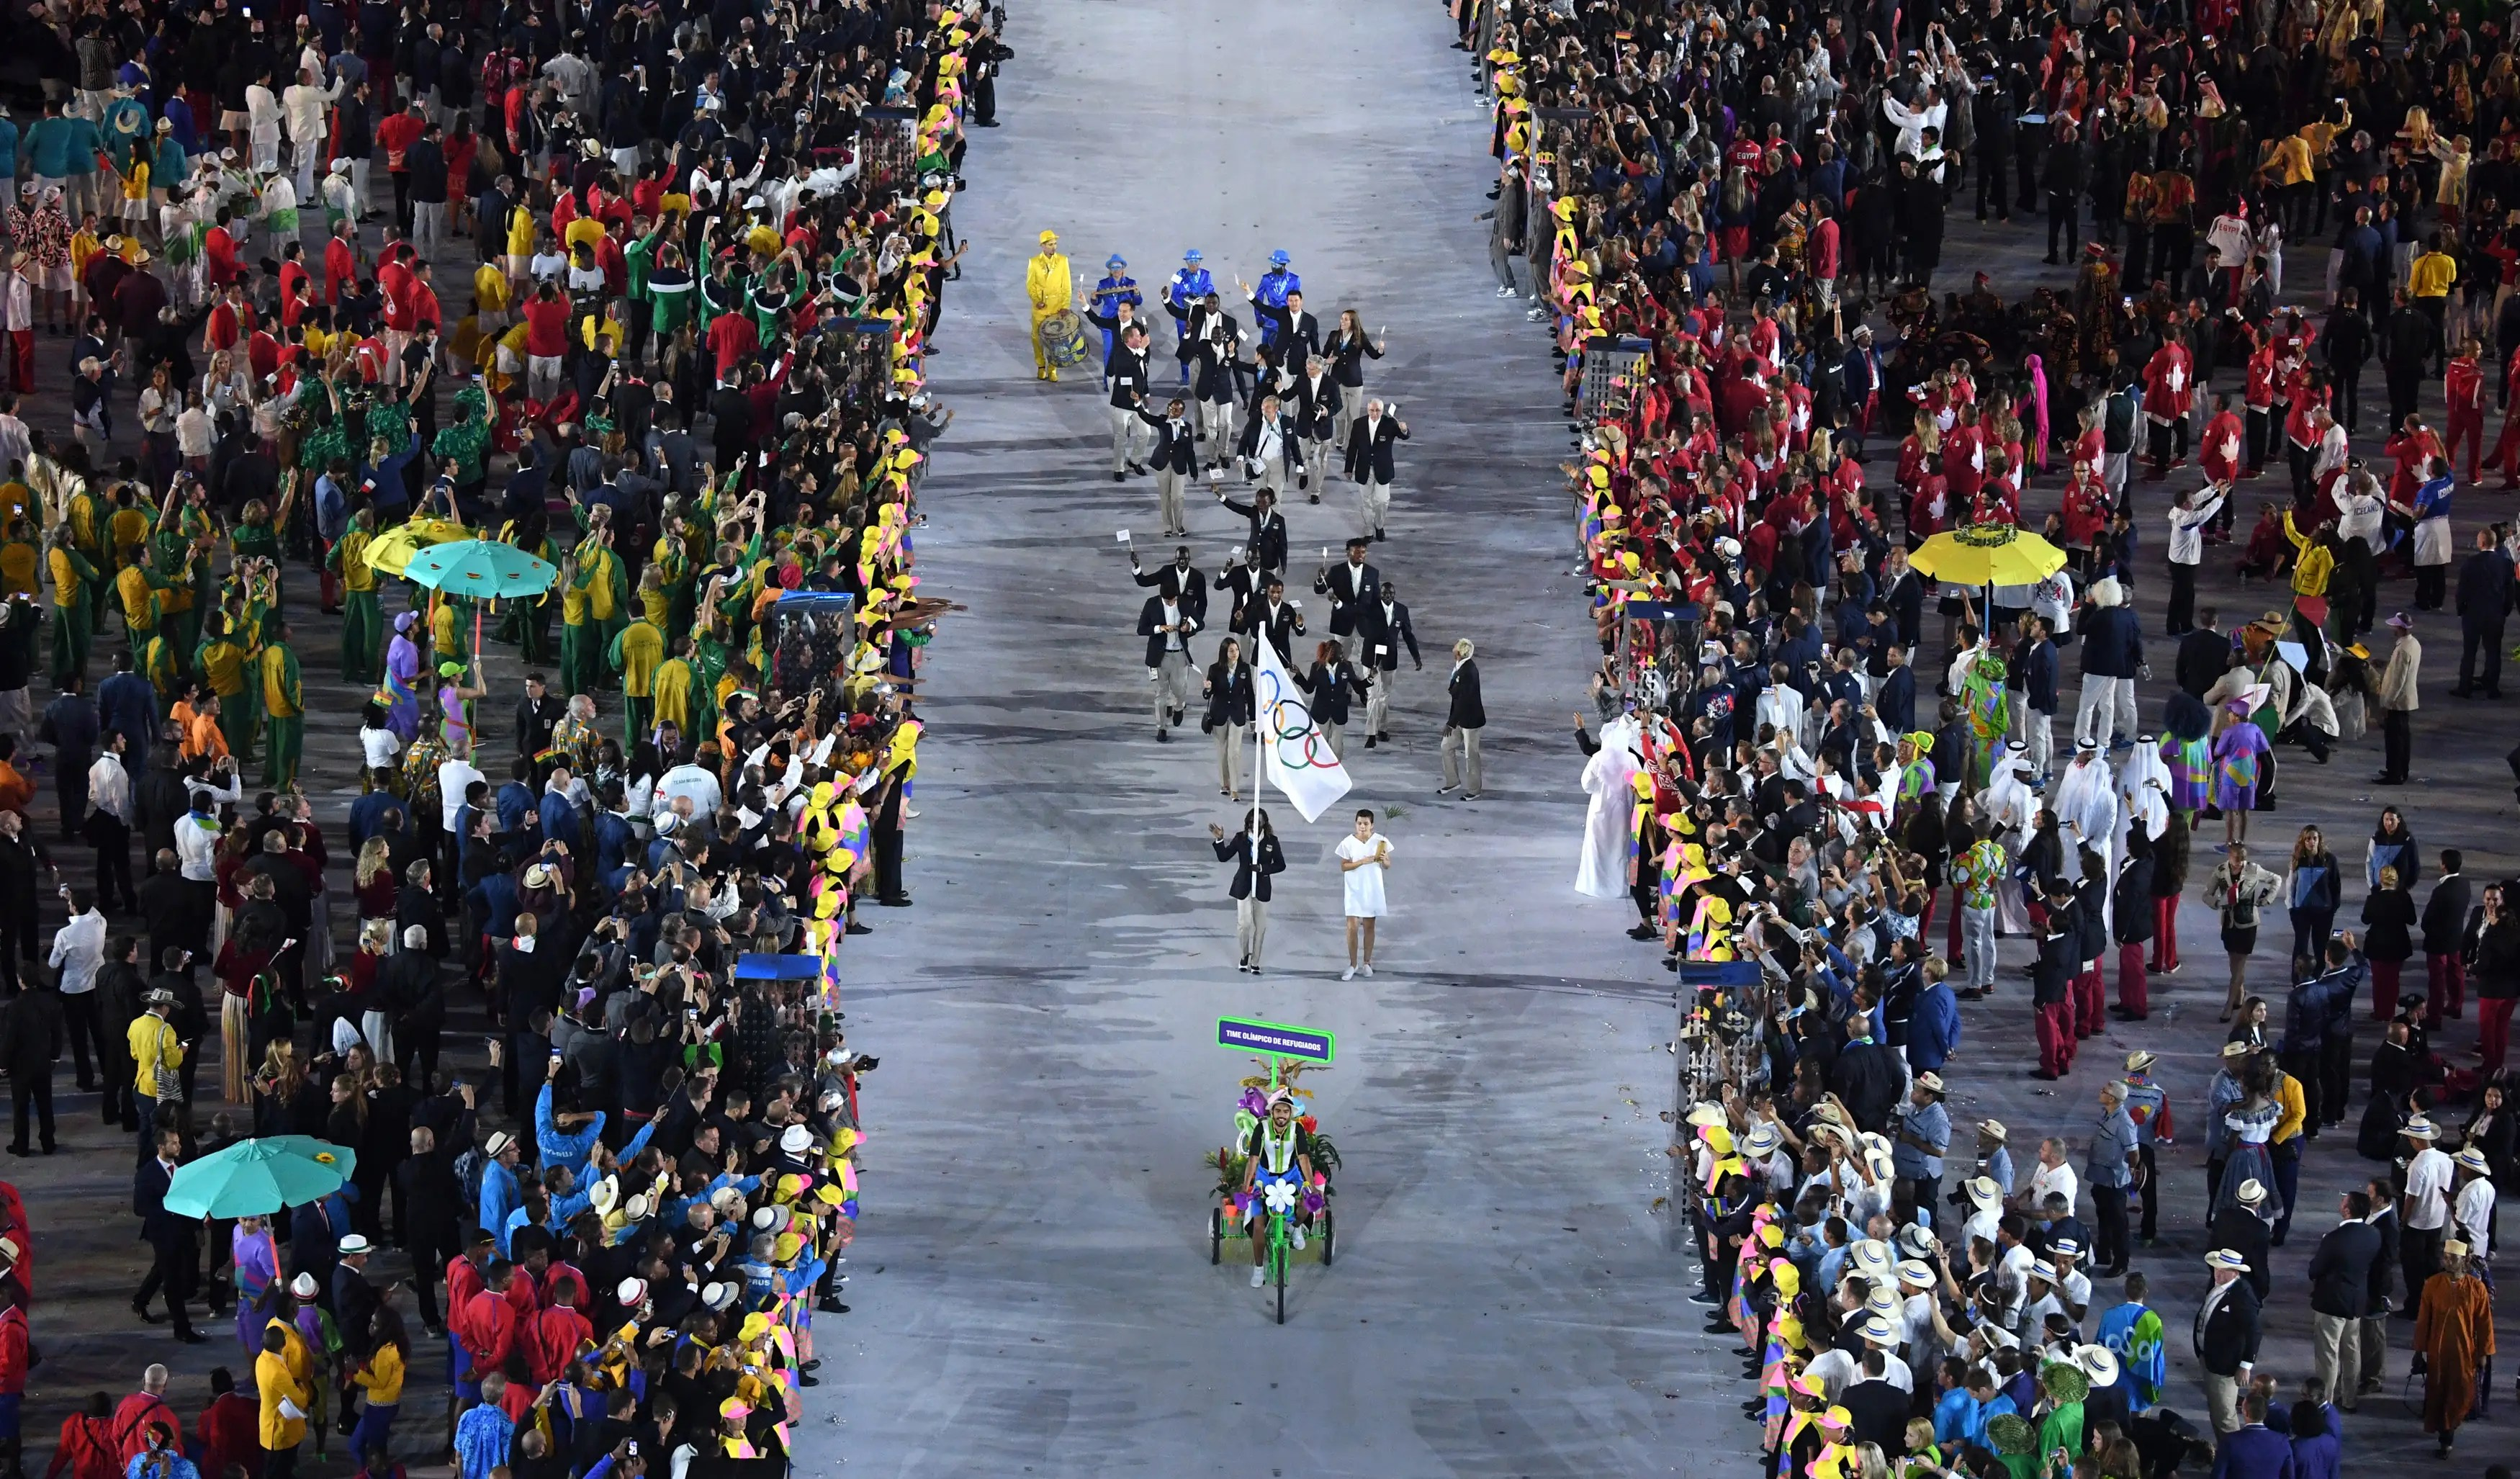 2016: The 2016 Rio Olympics welcomed the first ever team made up entirely of refugees. The Refugee Olympic Team received the biggest applause during the opening ceremony and consists of athletes from South Sudan, Ethiopia, Syria, and the Democratic Republic of Congo. Rose Nathike Lokonyen, originally from South Sudan, carried the team's Olympic flag.